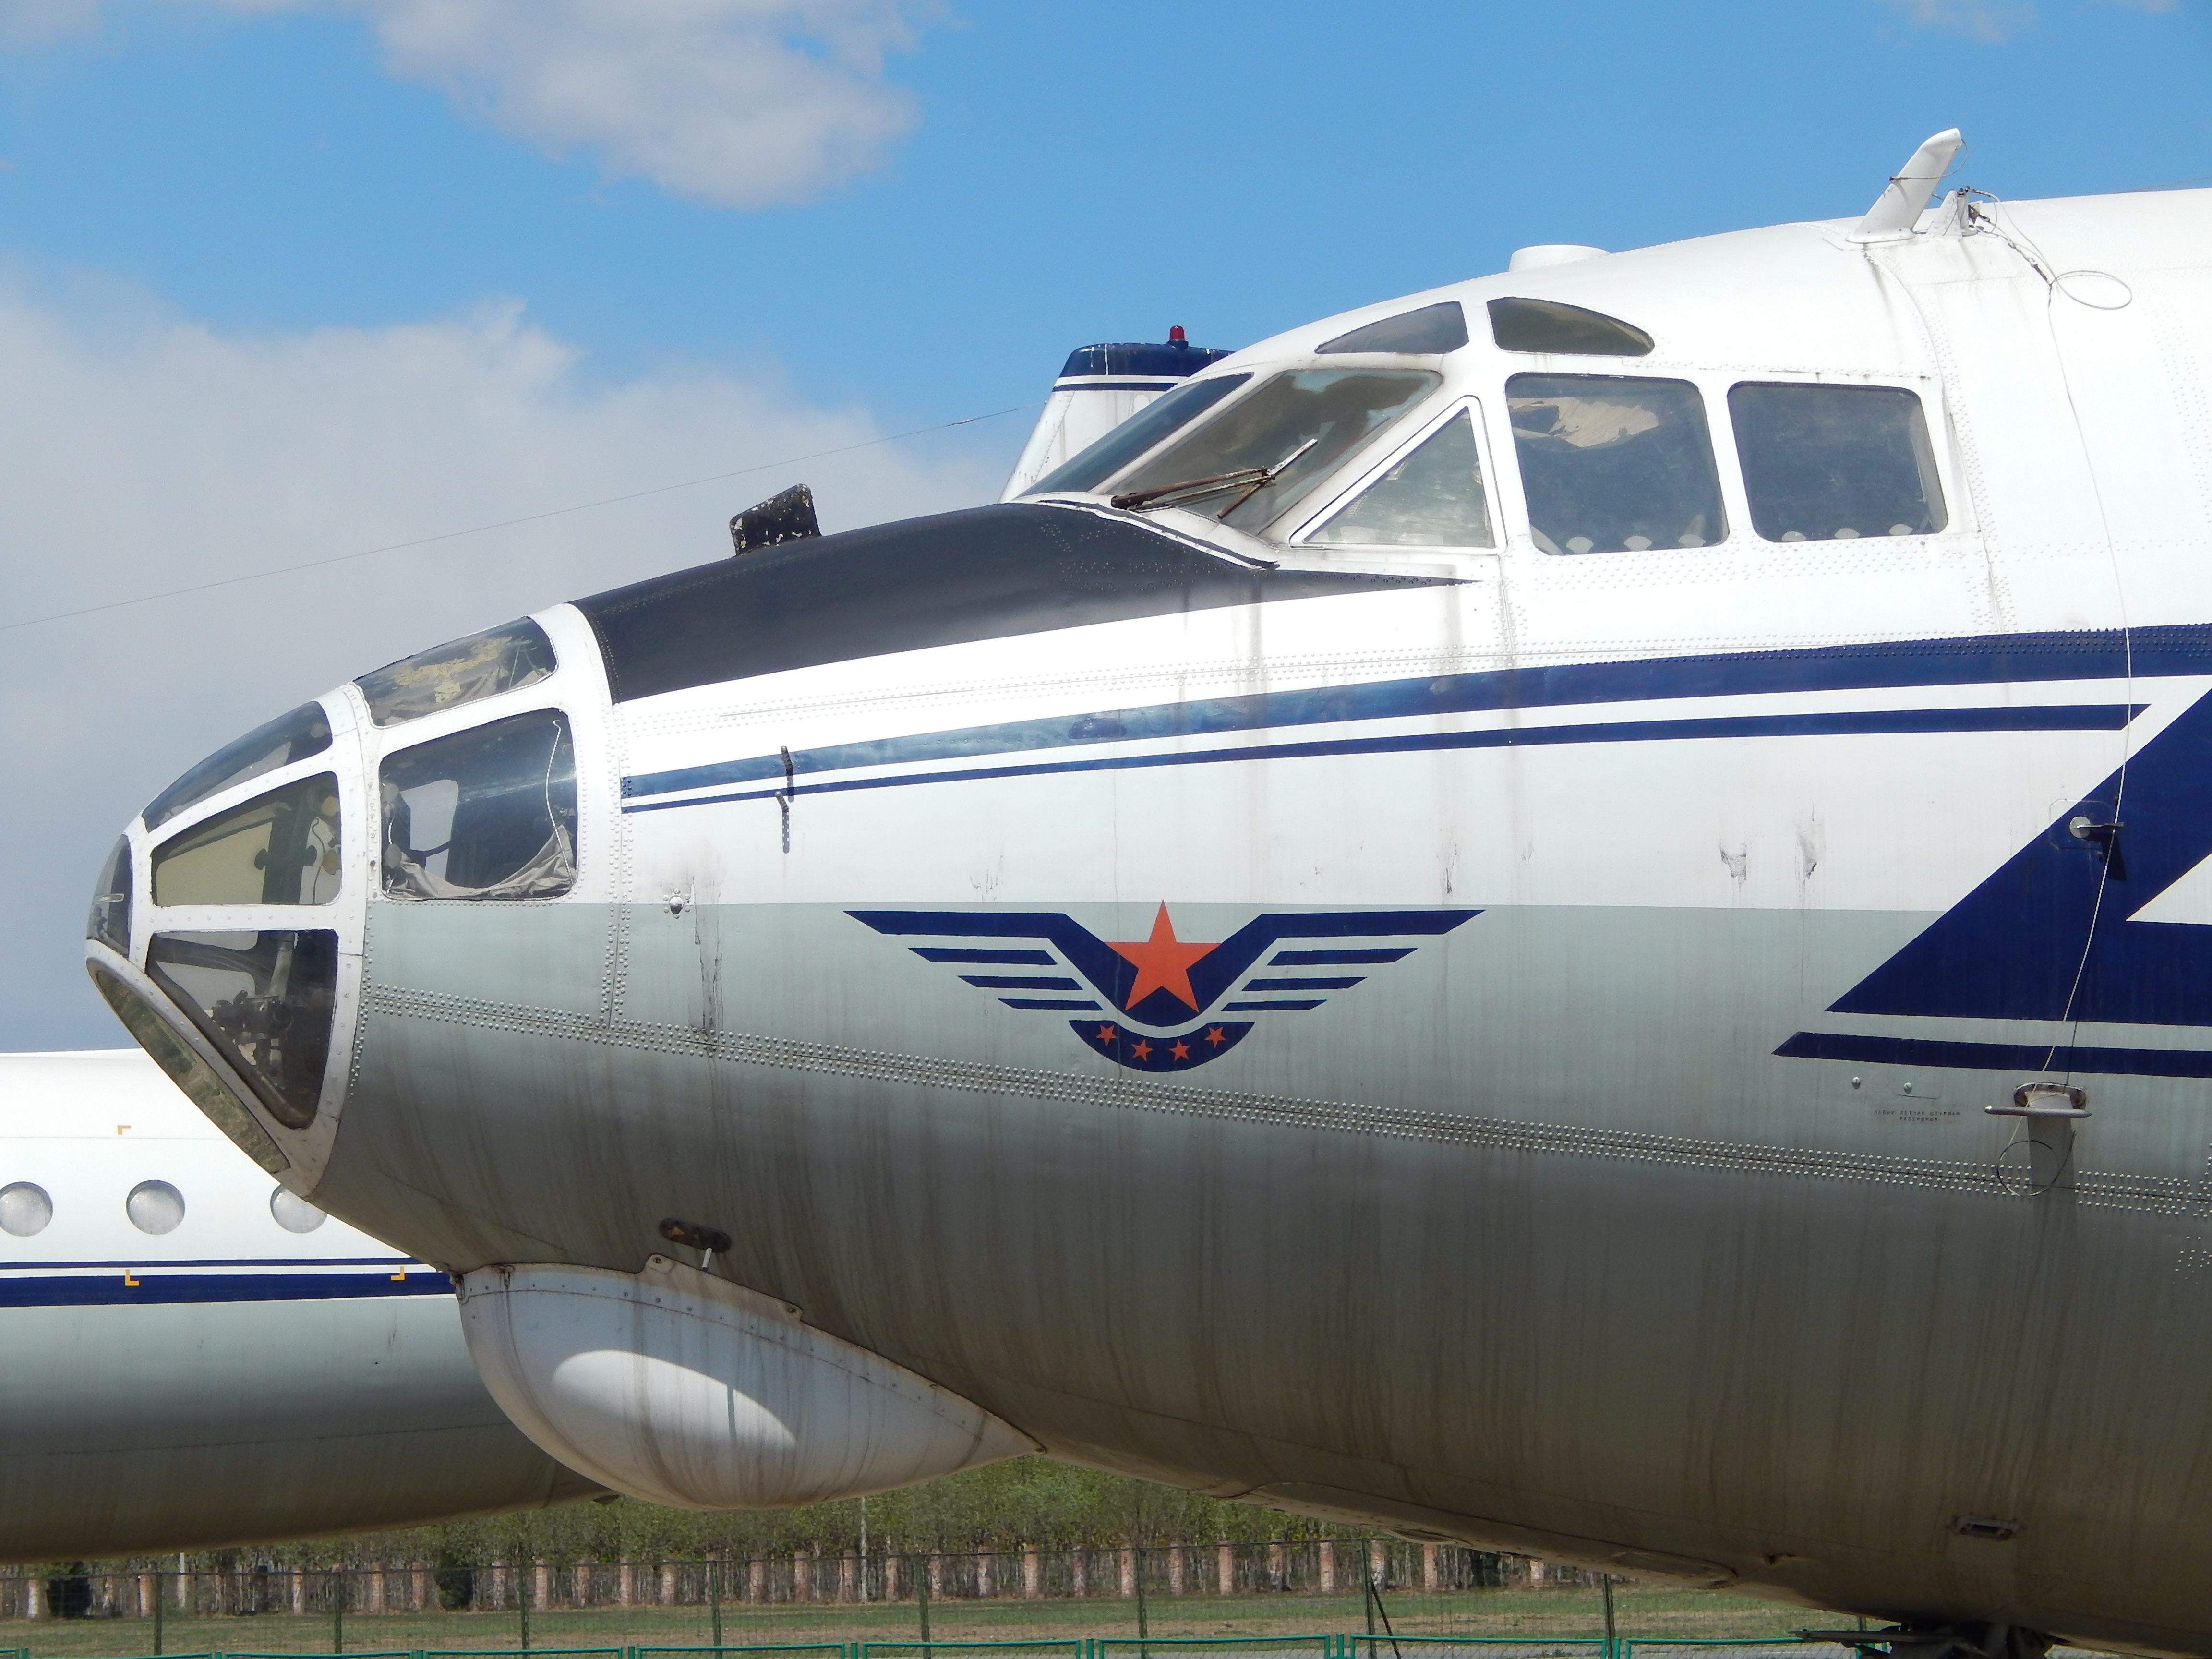 File:Chinese Air Force An-12, Beijing Aviation Museum (26201793250